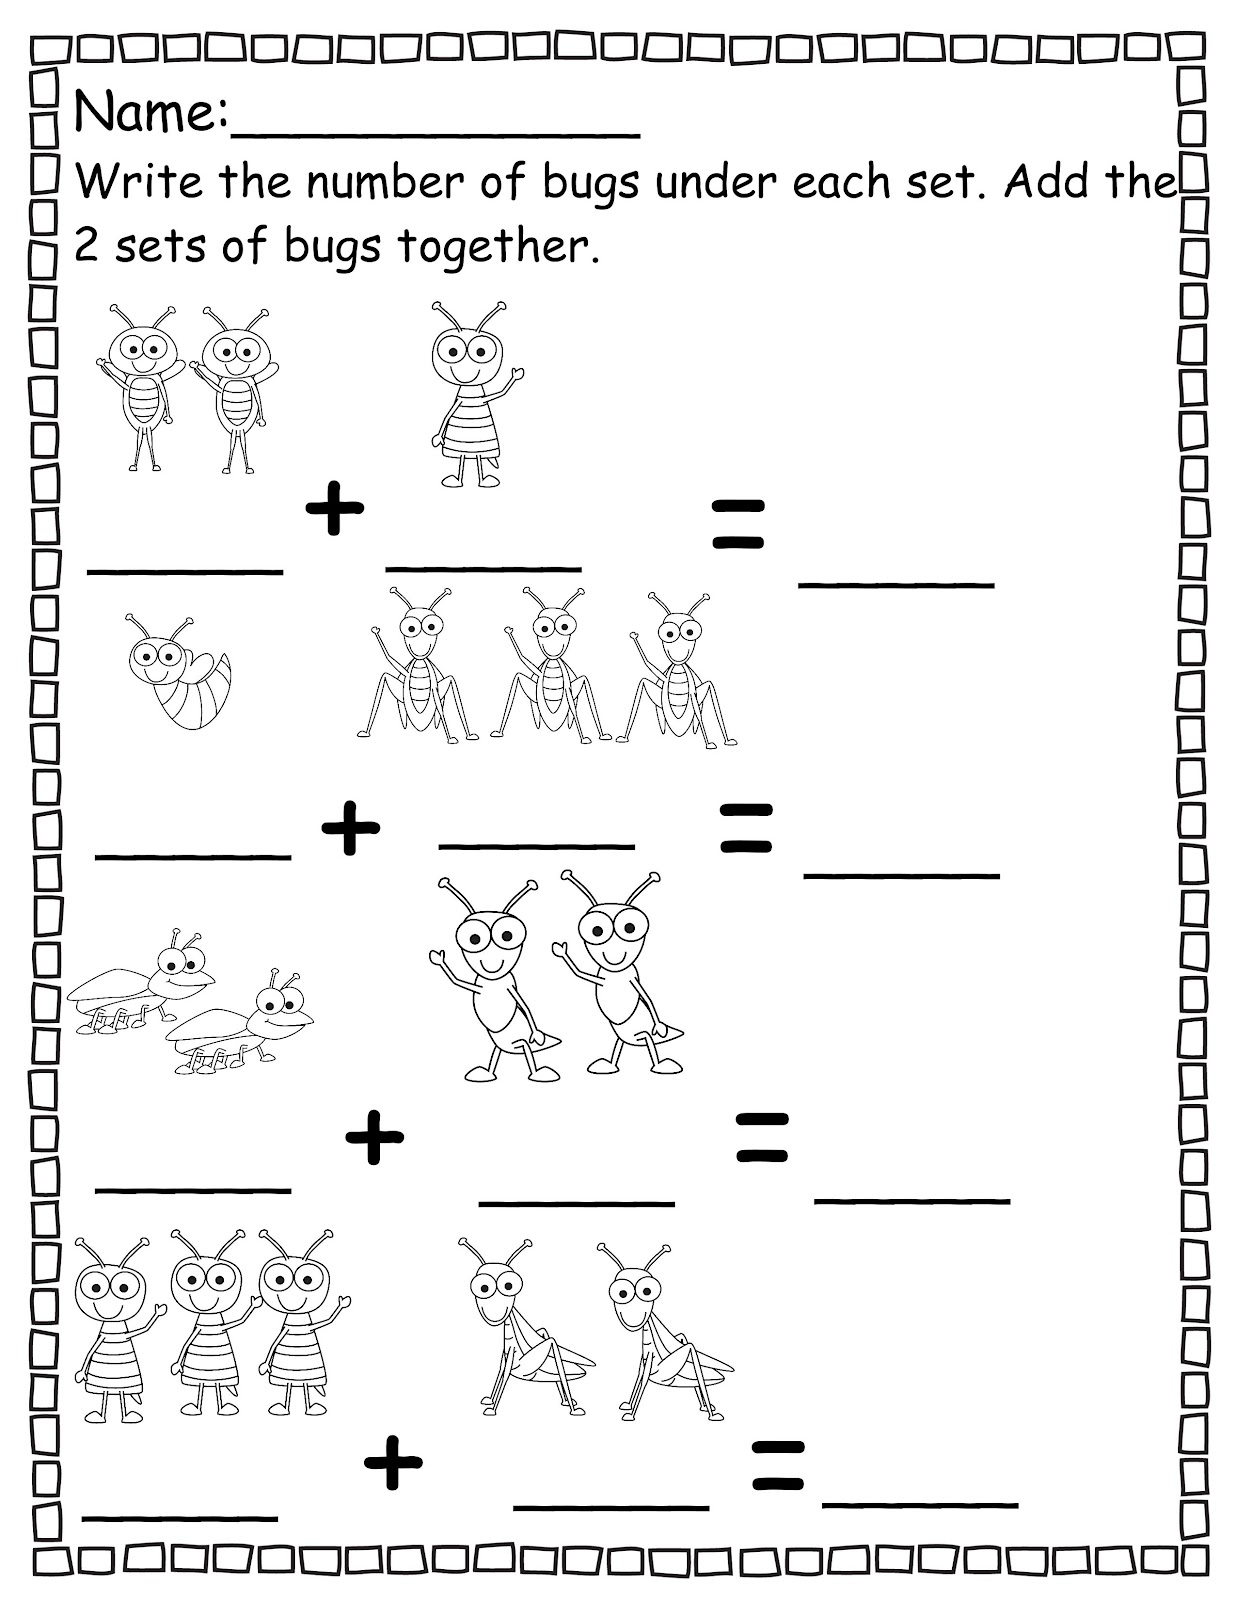 Printables Pre Kindergarten Worksheets Free free pre kindergarten worksheets brandonbrice us for k actualidadeducativa comcheck math homework neatly printable division